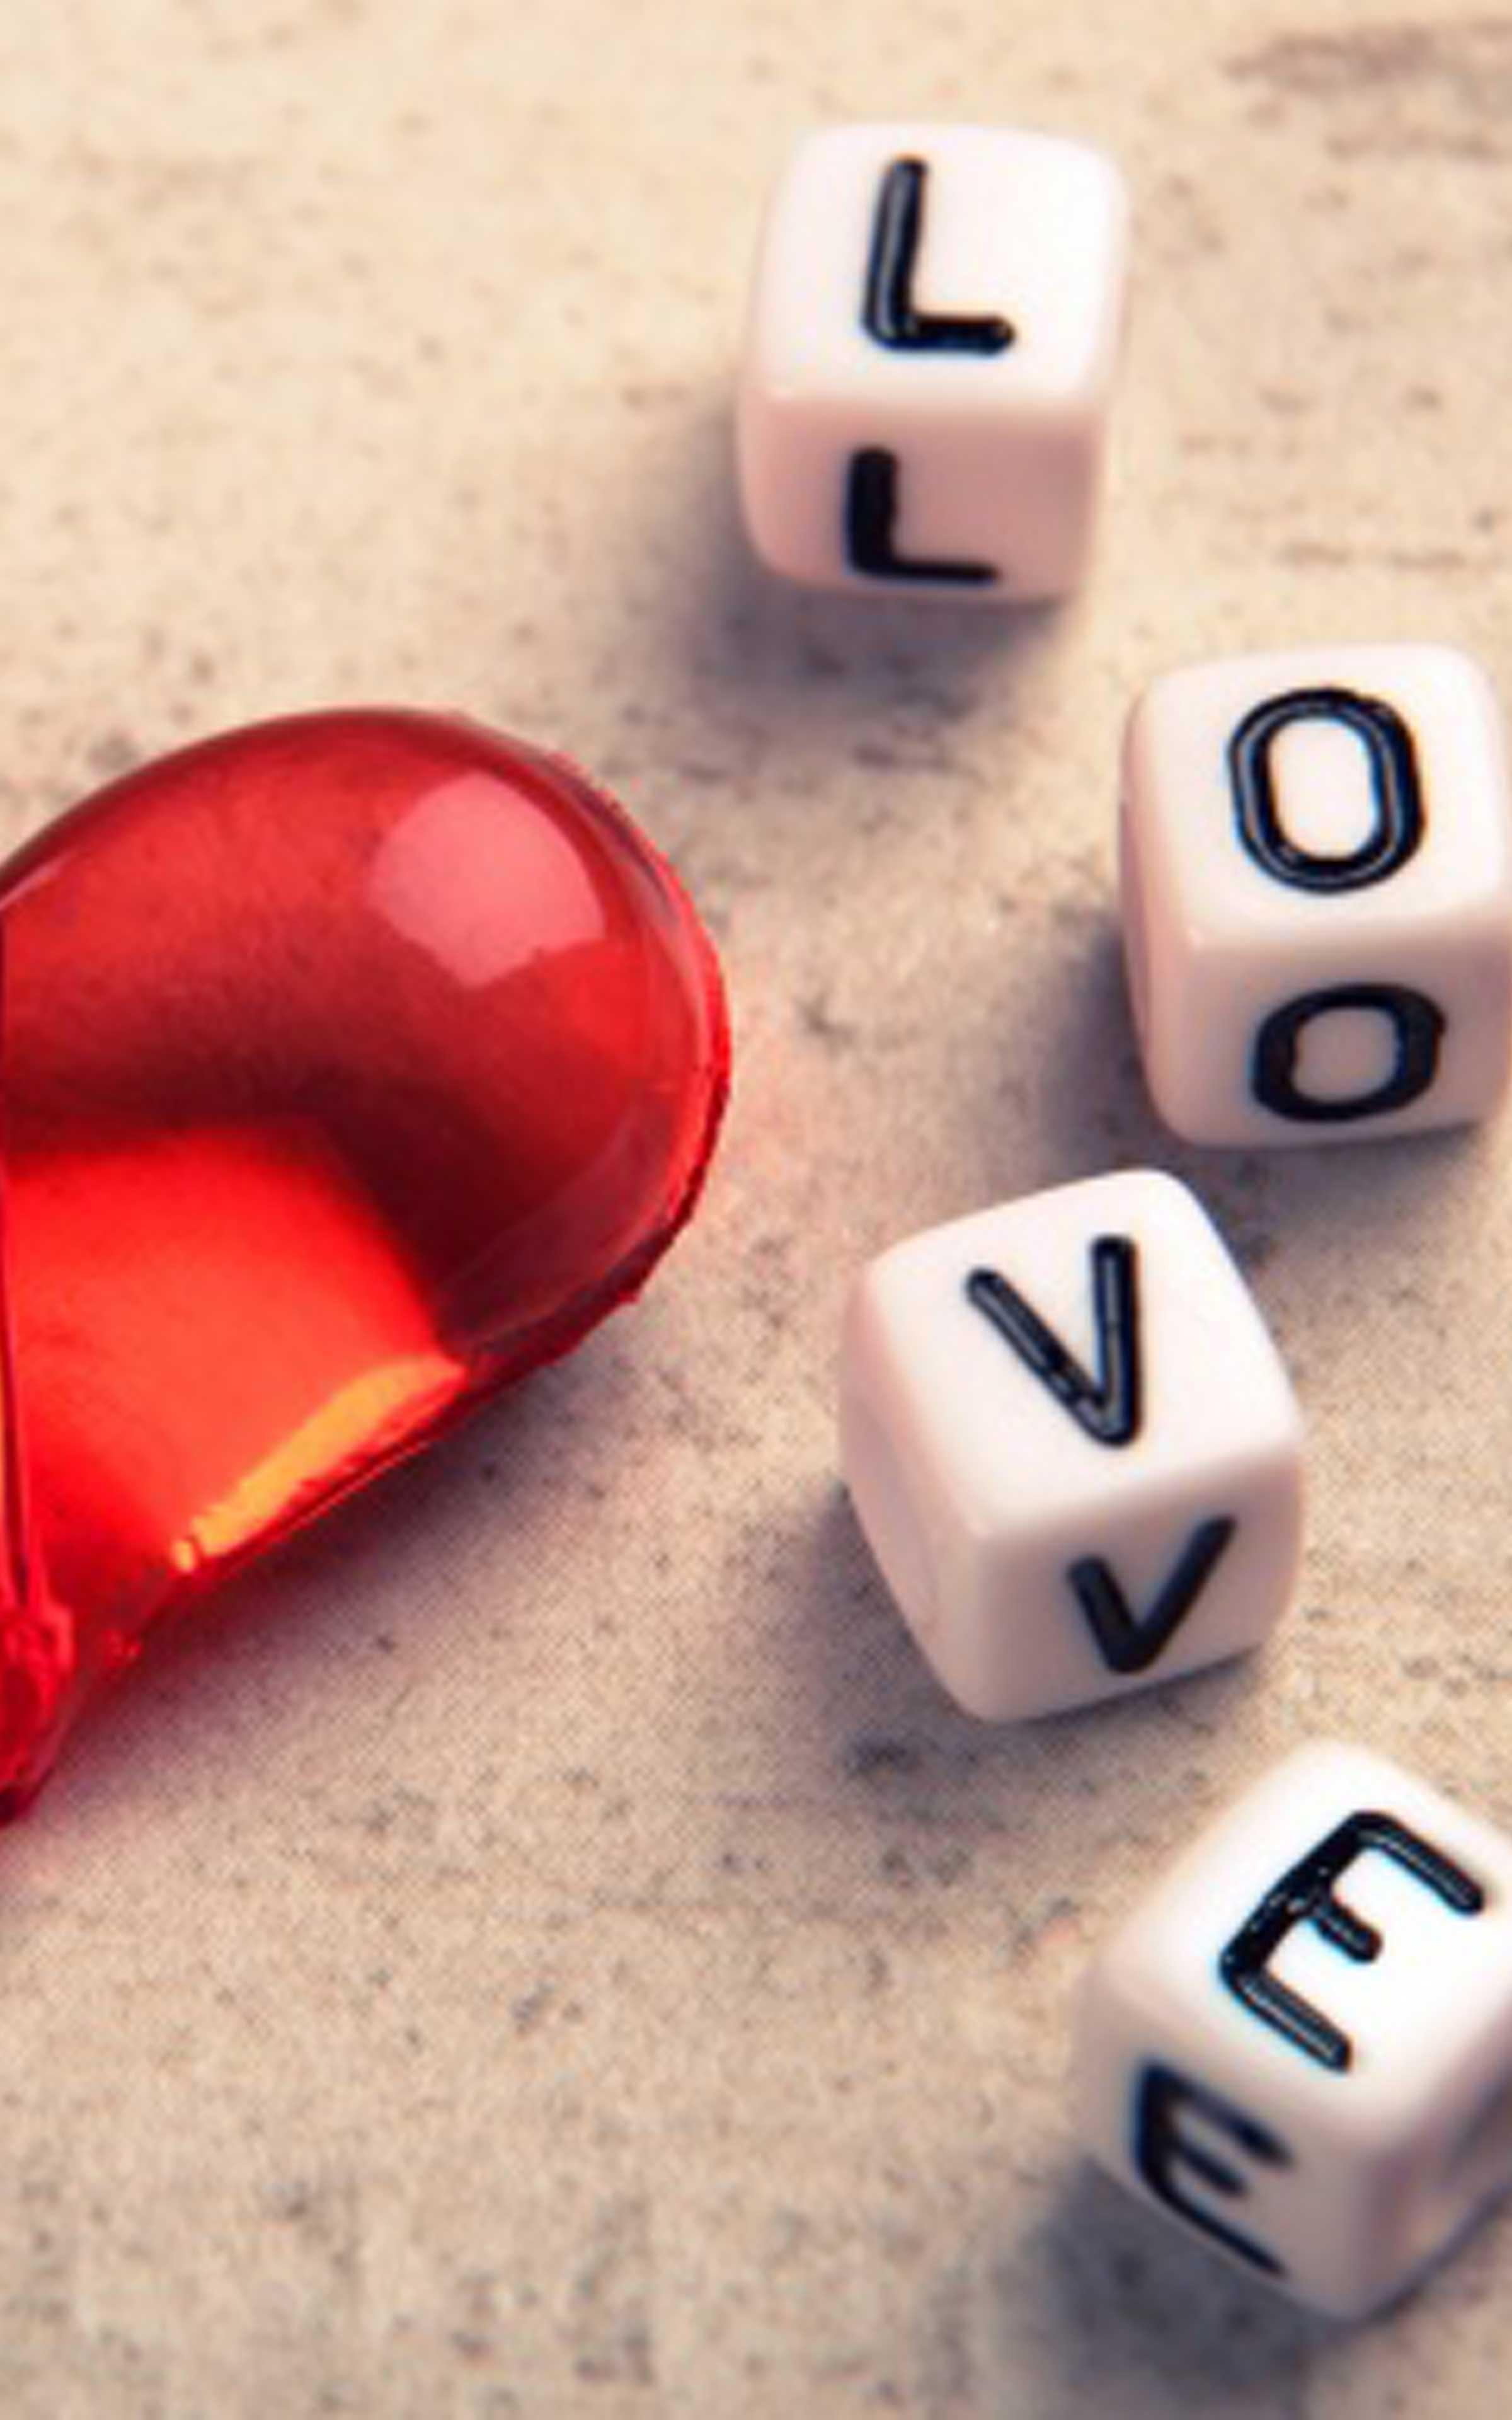 Love Wallpaper Full Hd Best Love Wallpapers For Android Apk Download